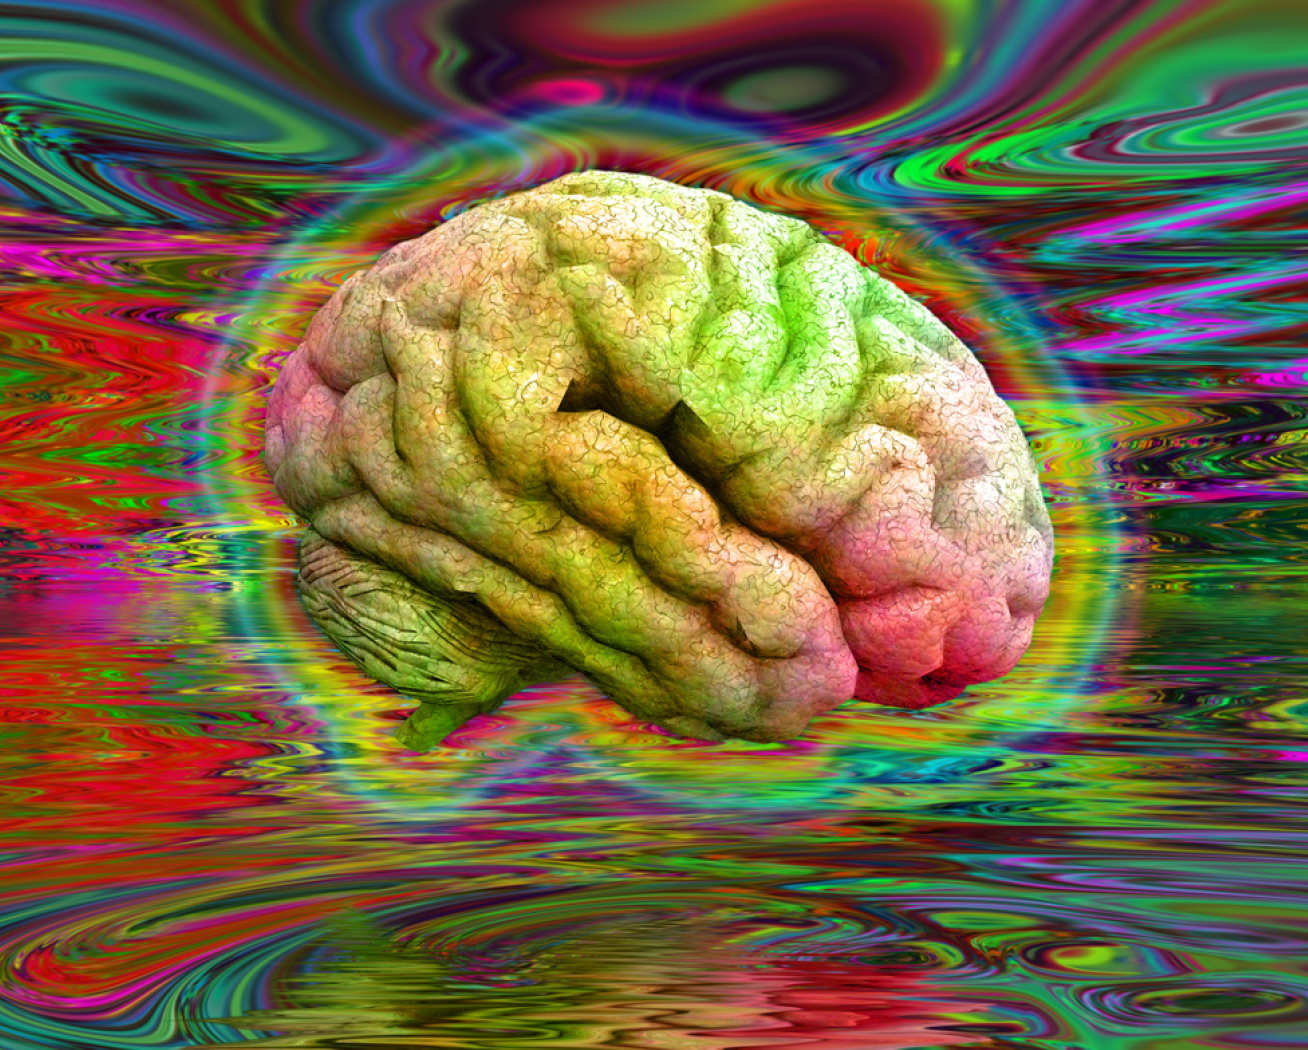 Concept image of brain on psychedelics